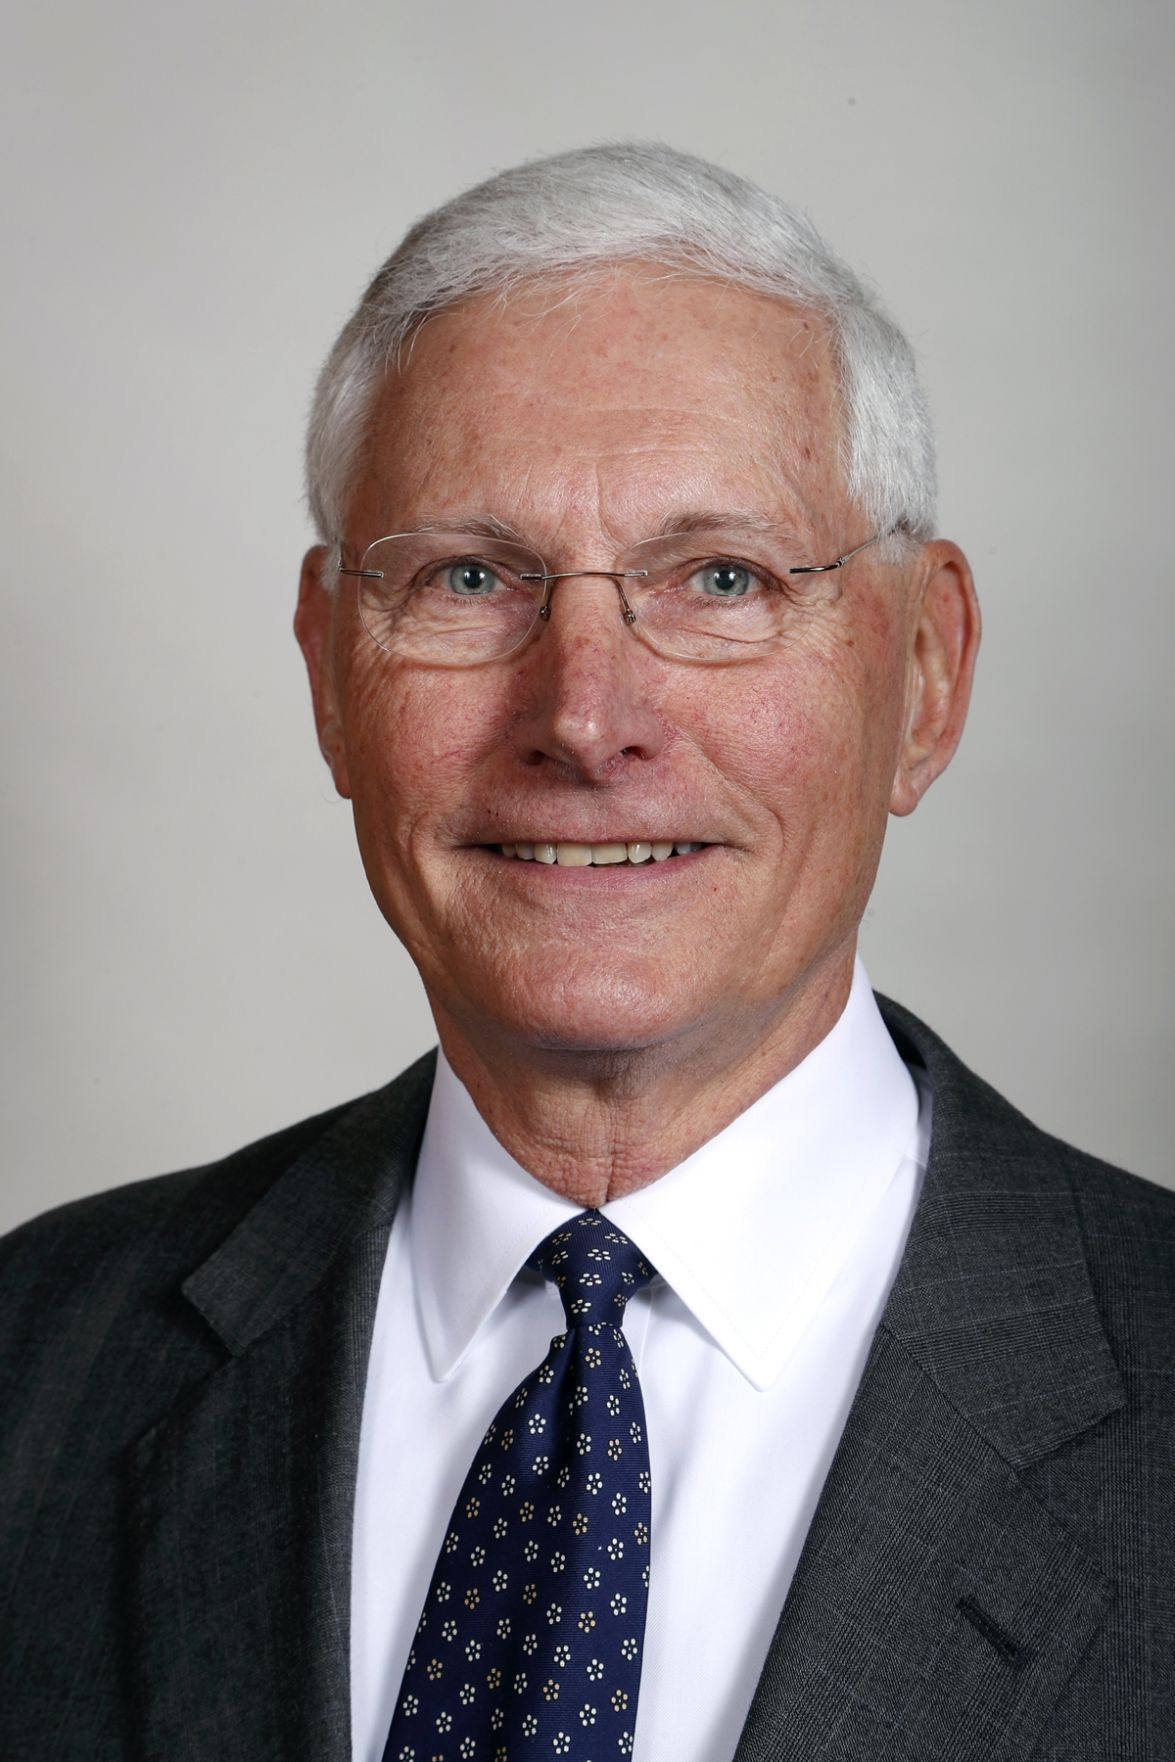 Iowa state Rep. Guy Vander Linden